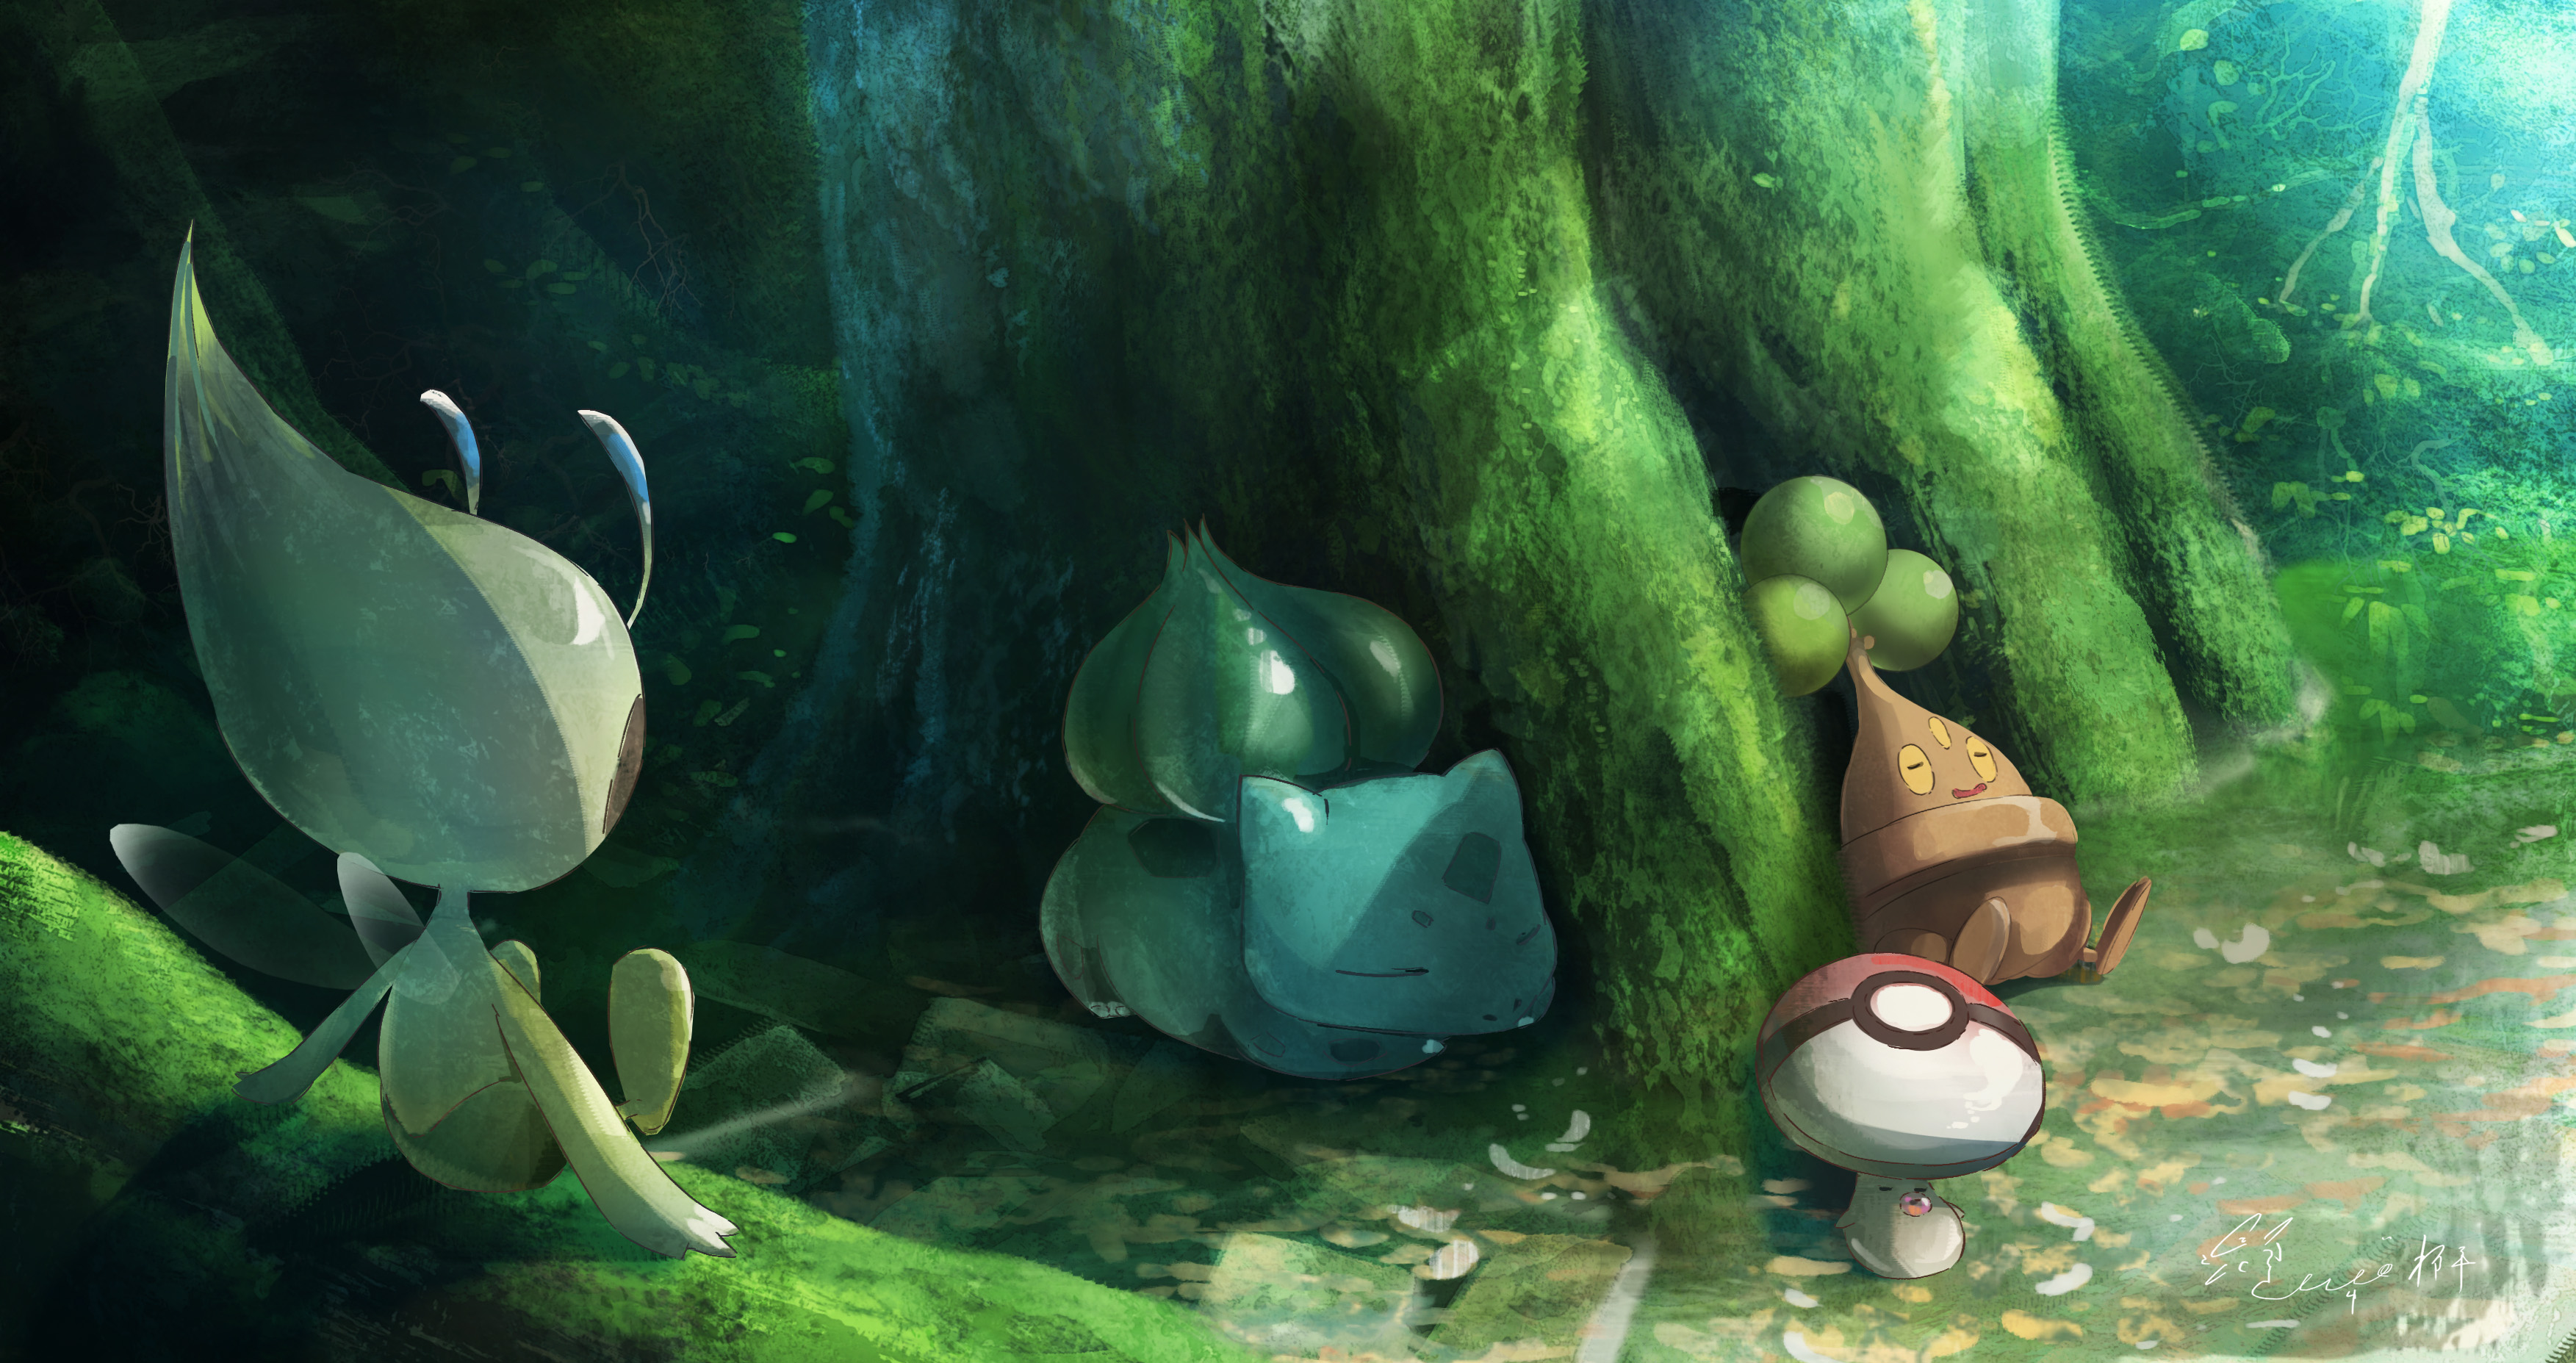 Bonsly Pokemon Bulbasaur Pokemon Celebi Pokemon Foongus Pokemon 3506x1855